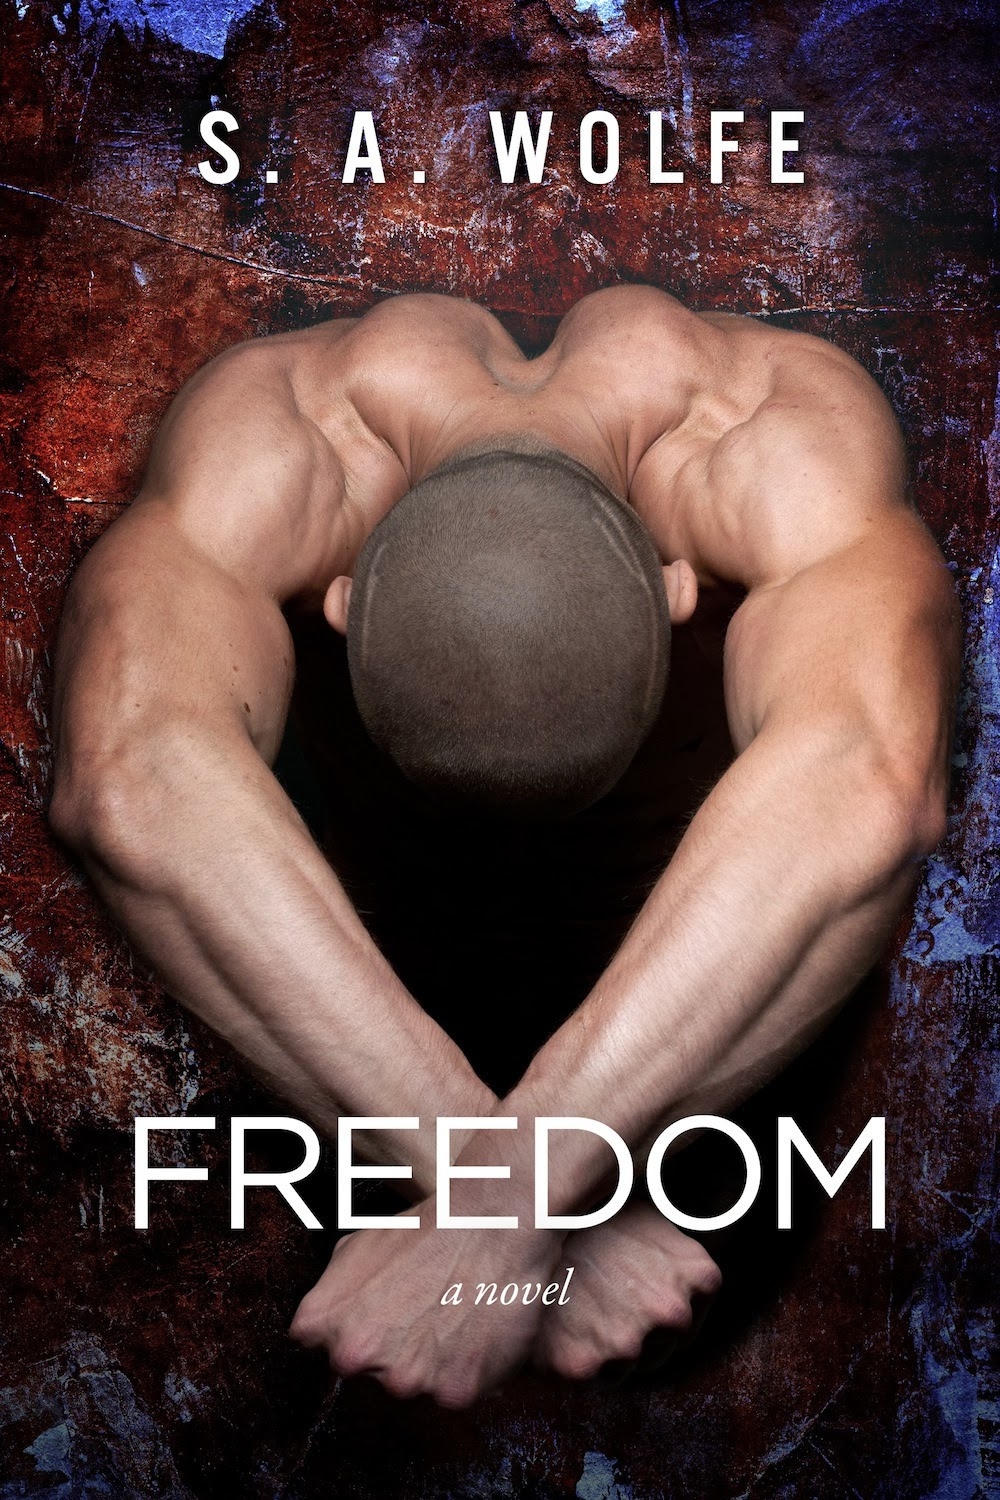 SA Wolfe- Freedom - a guy bent forward with incredible back muscle definition